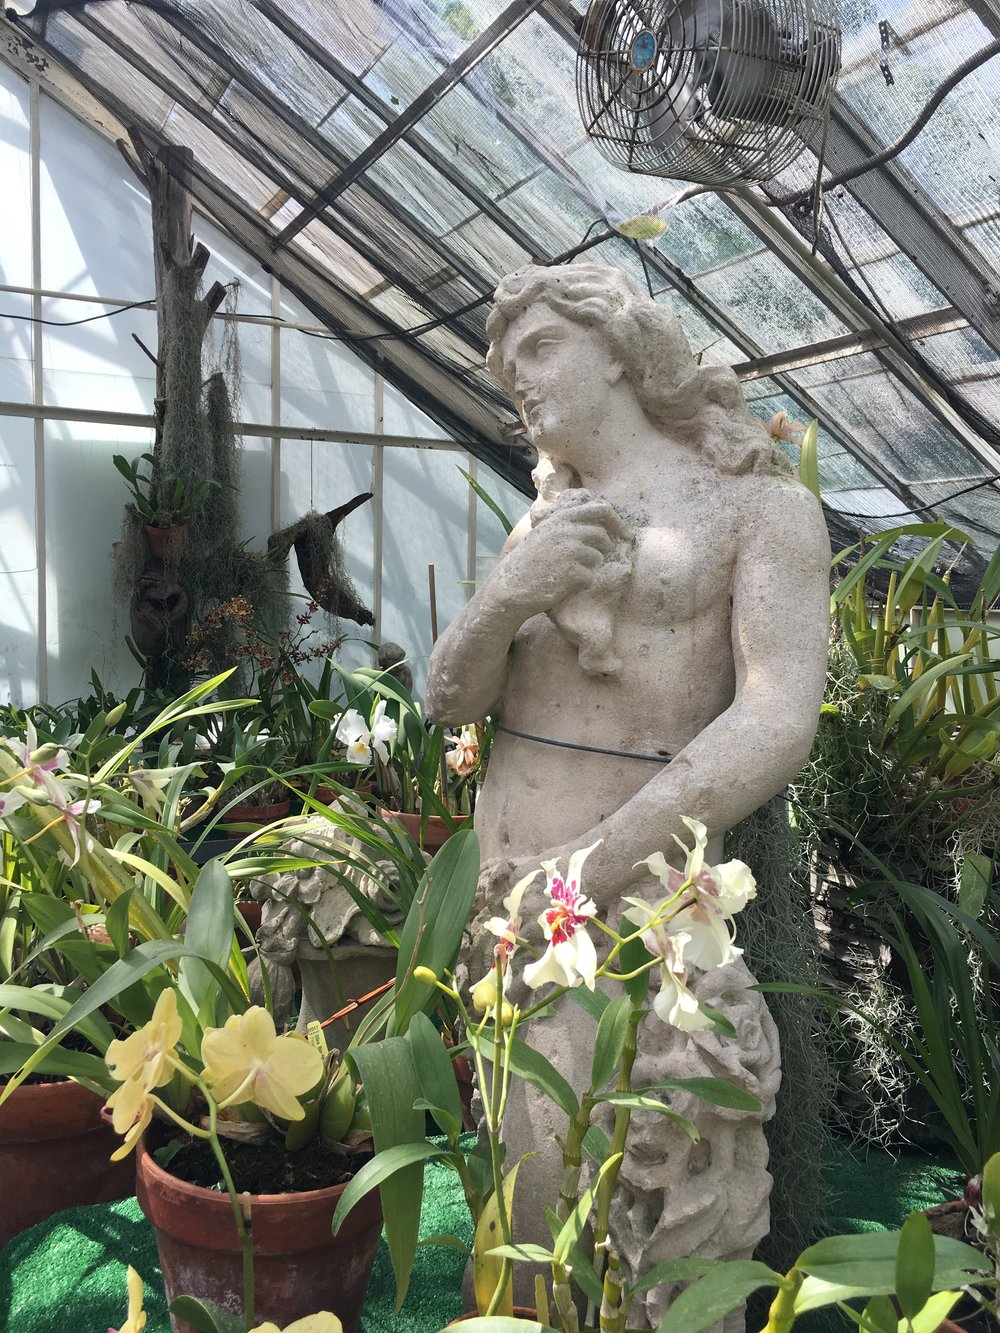 Garden statues are tucked among the lush foliage in the orchid green house.